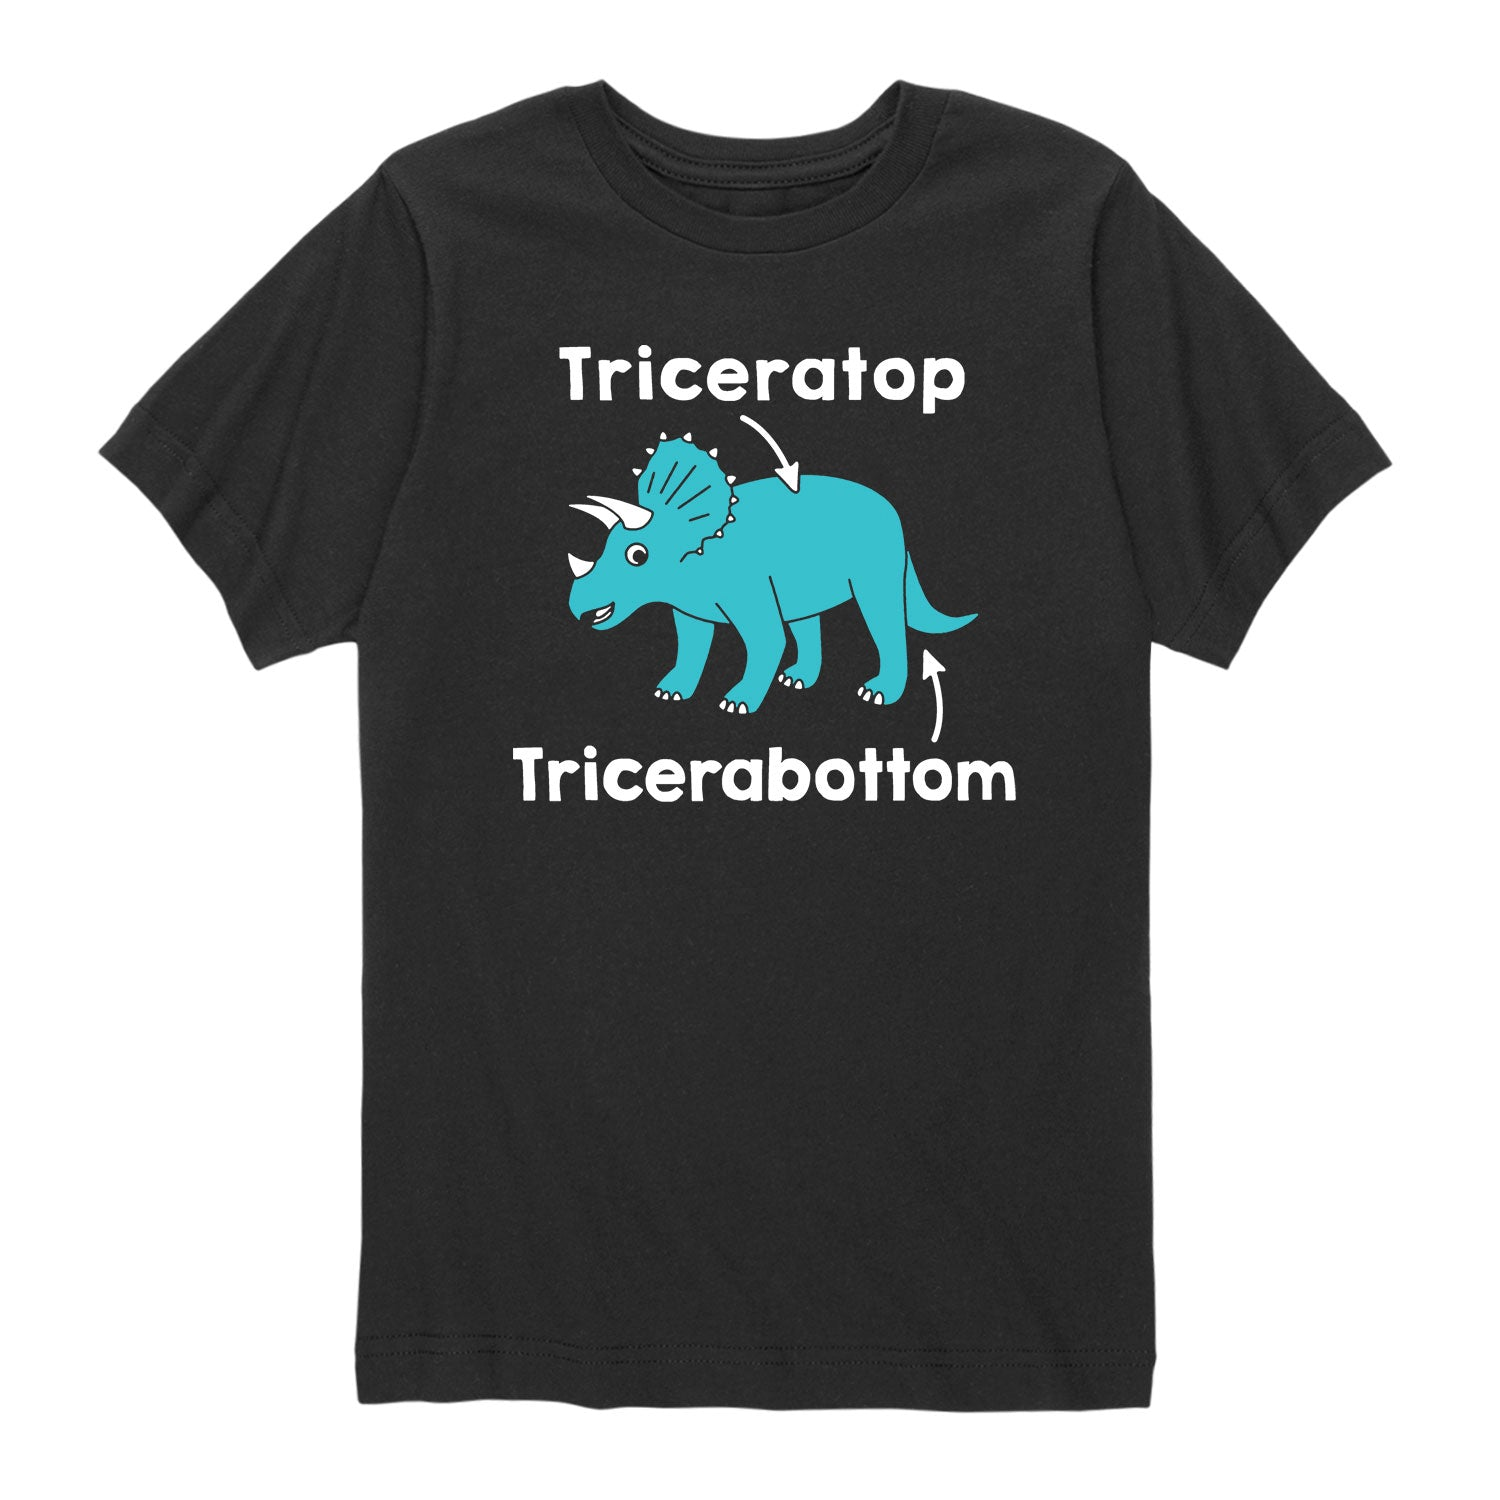 Triceratop Tricerabottom - Toddler Short Sleeve T-Shirt